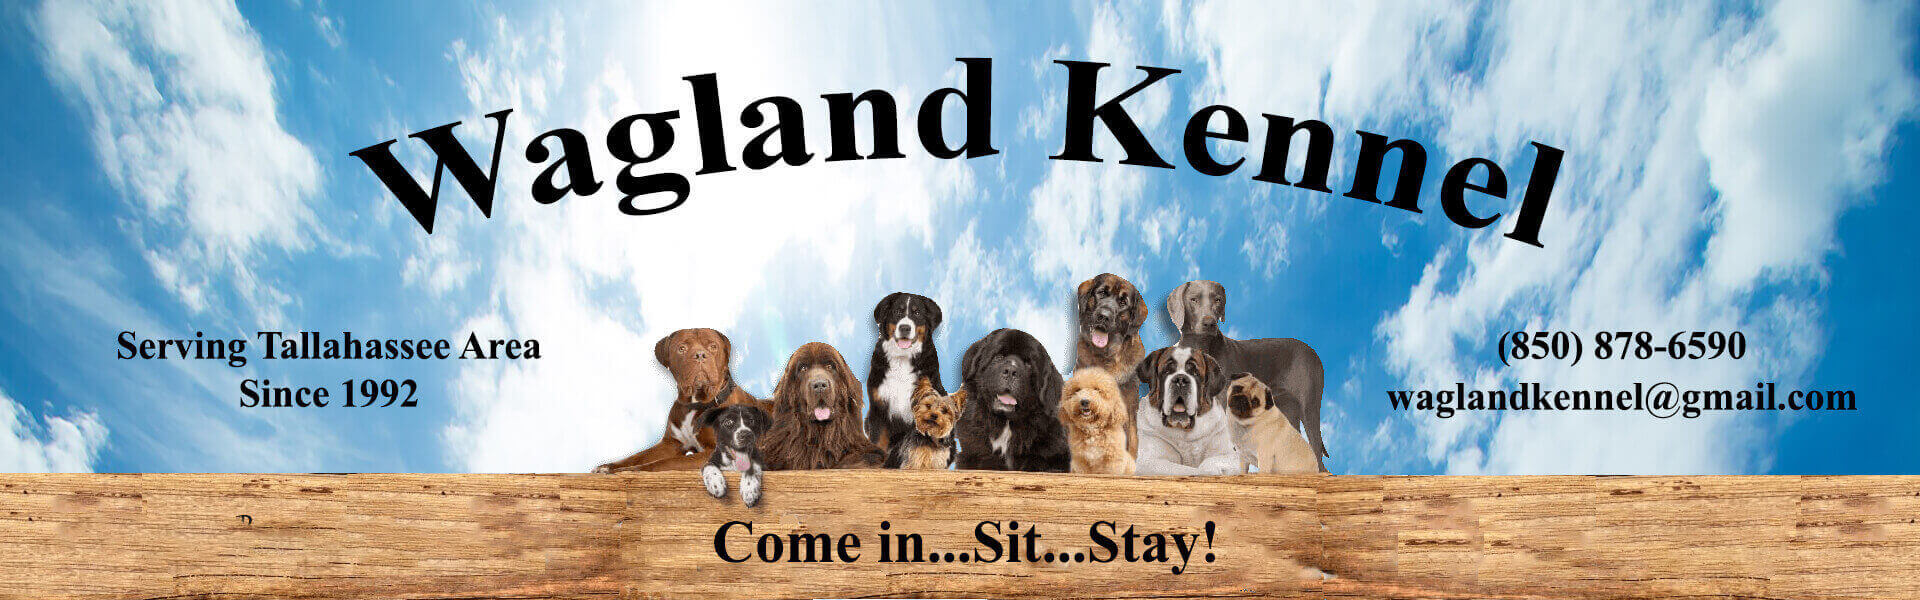 Wagland Kennel Header Image